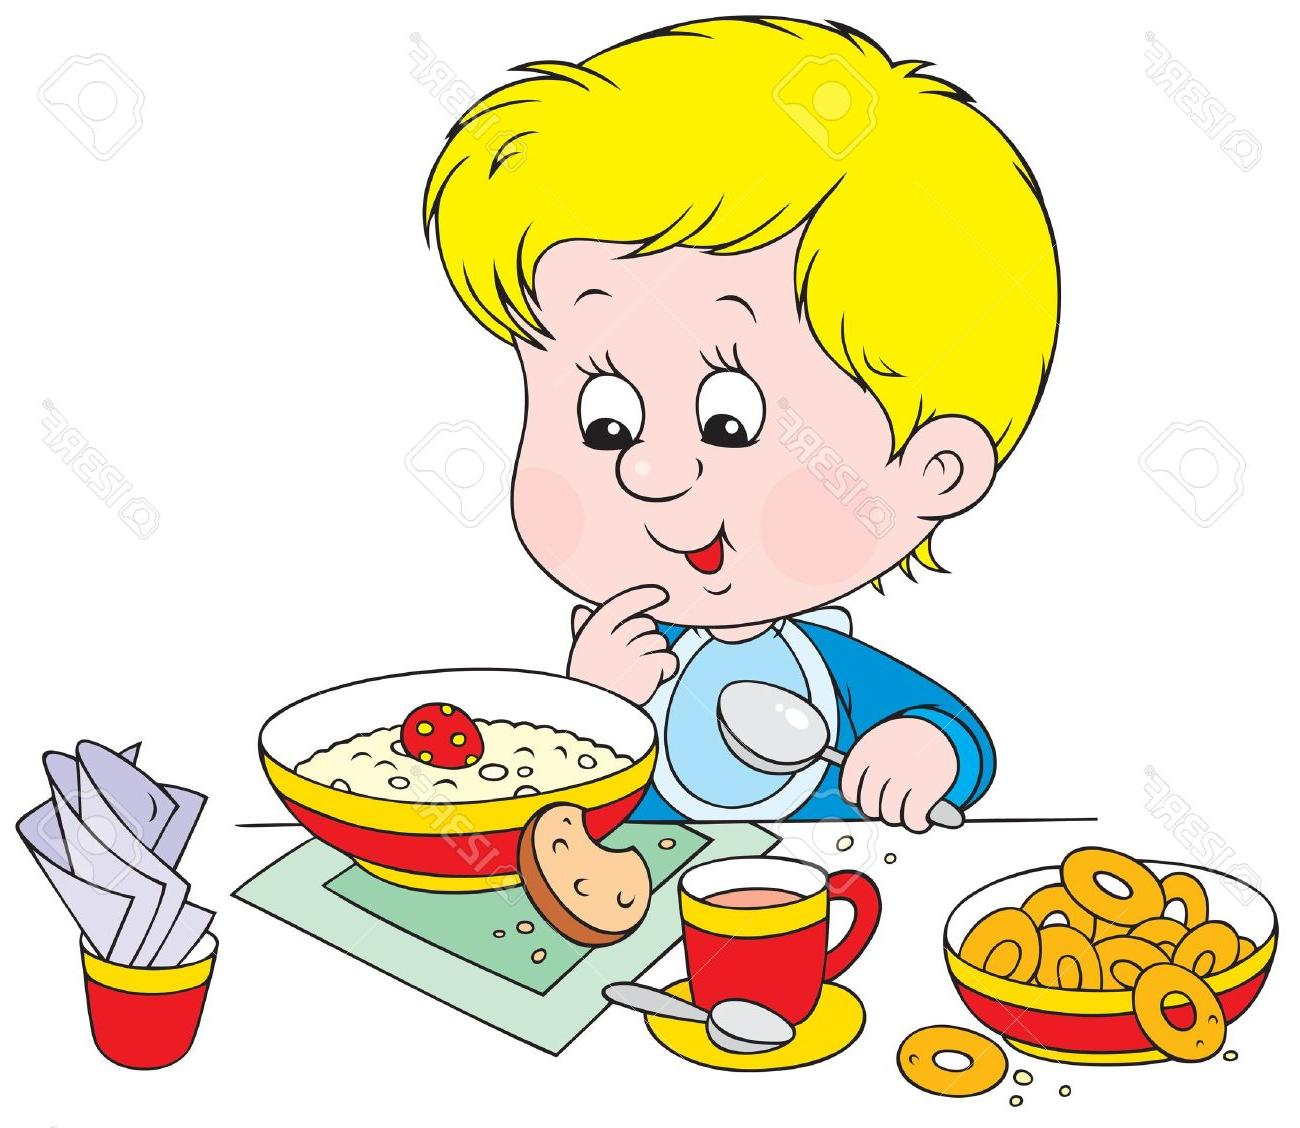 boy eating clipart - Clipground - 141.9KB